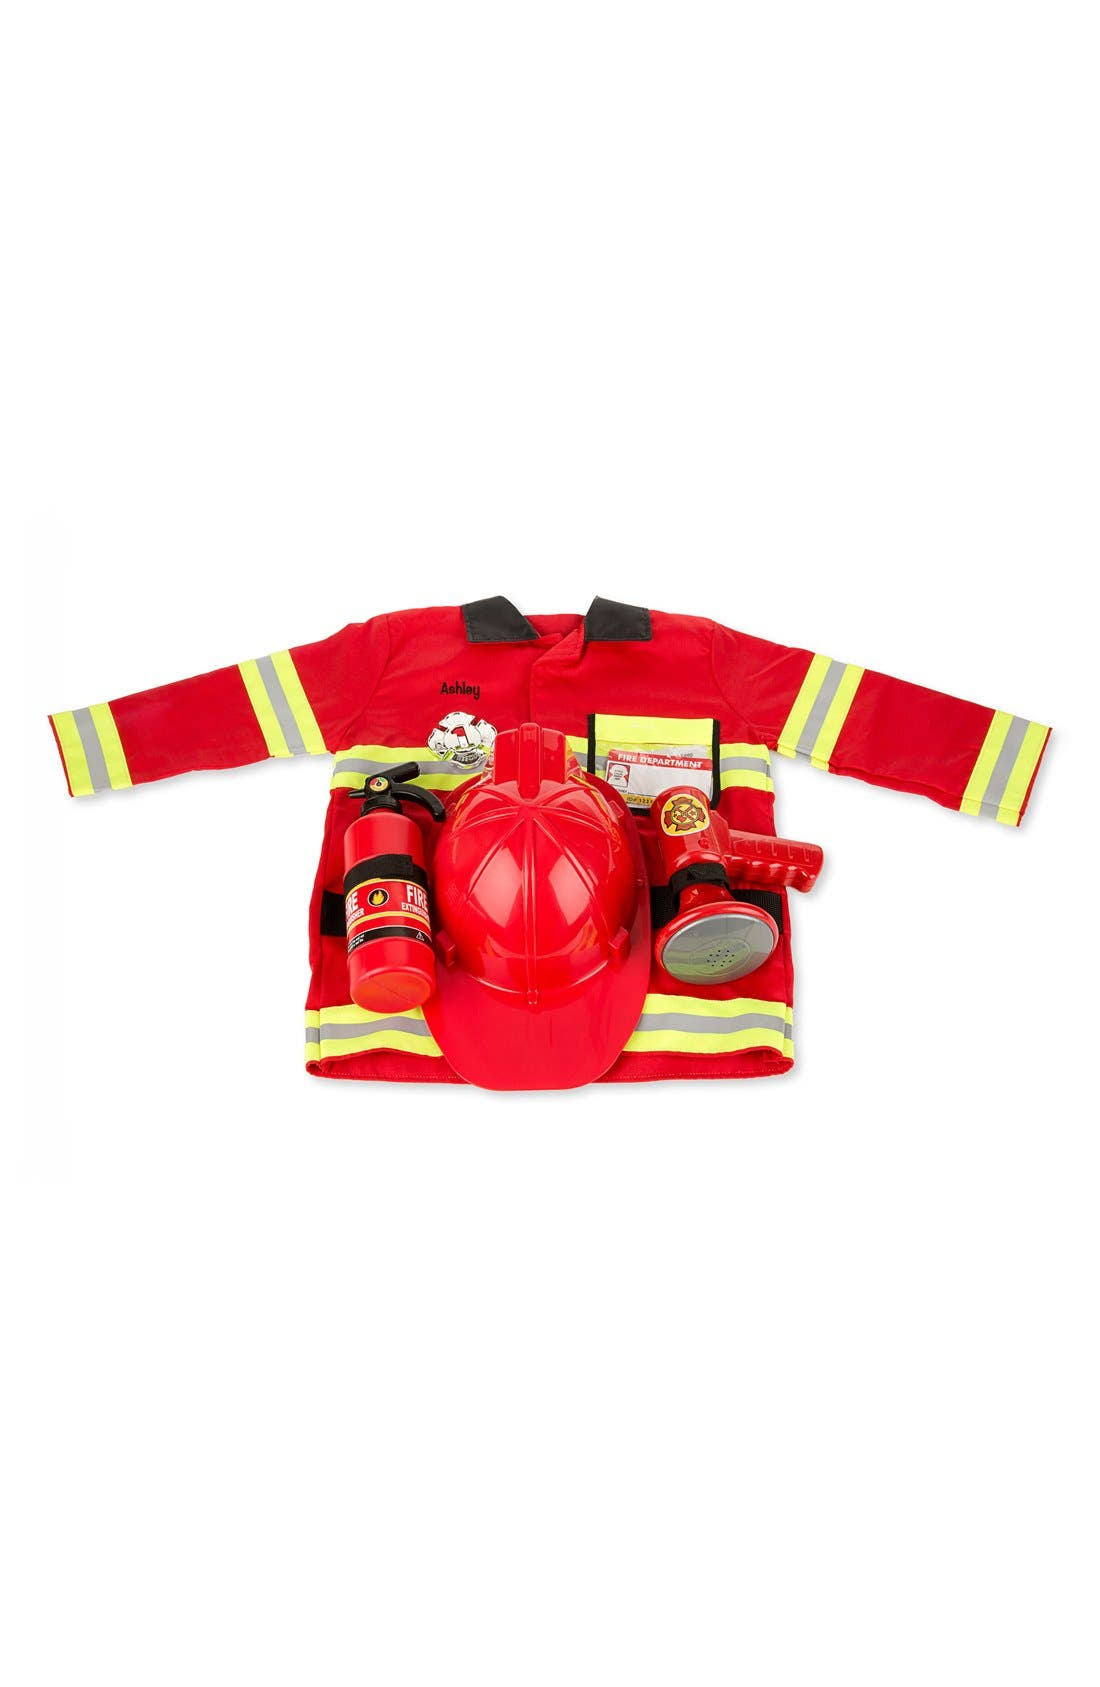 MELISSA & DOUG Personalized Fire Chief Costume Set